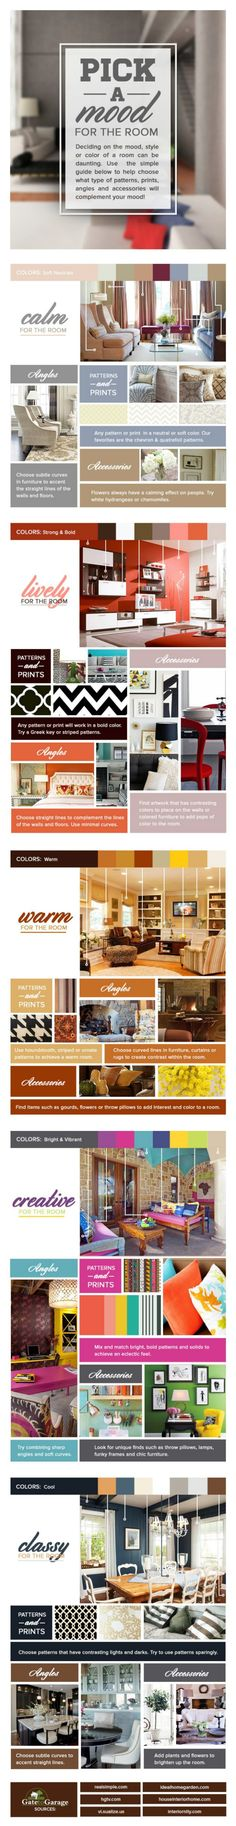 3 colors and moods infographic 50 amazingly clever cheat sheets to simplify home decorating - Decor Styles